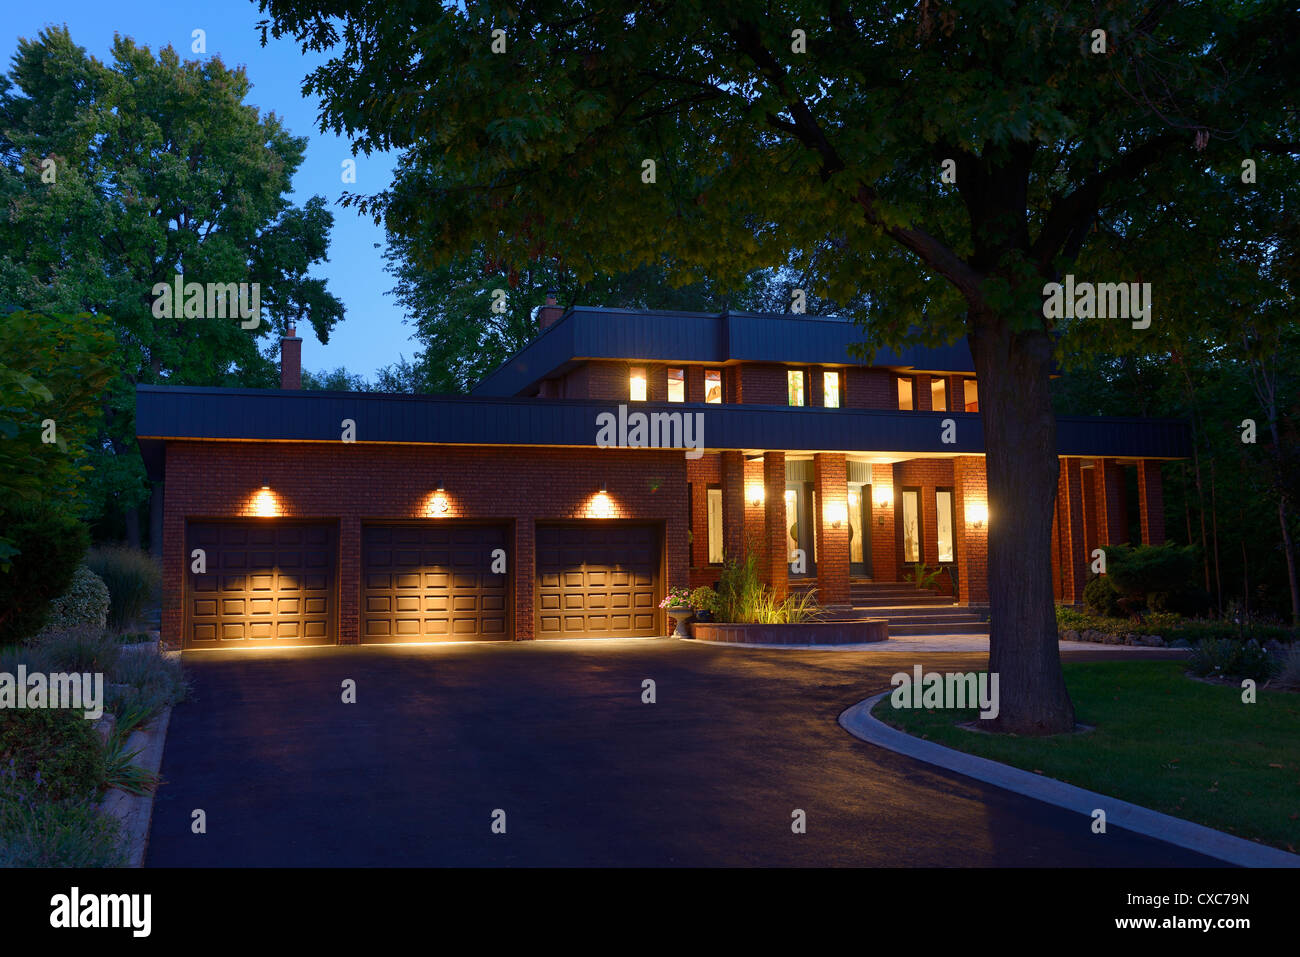 Twilight House red brick house with circular driveway and three car garage at